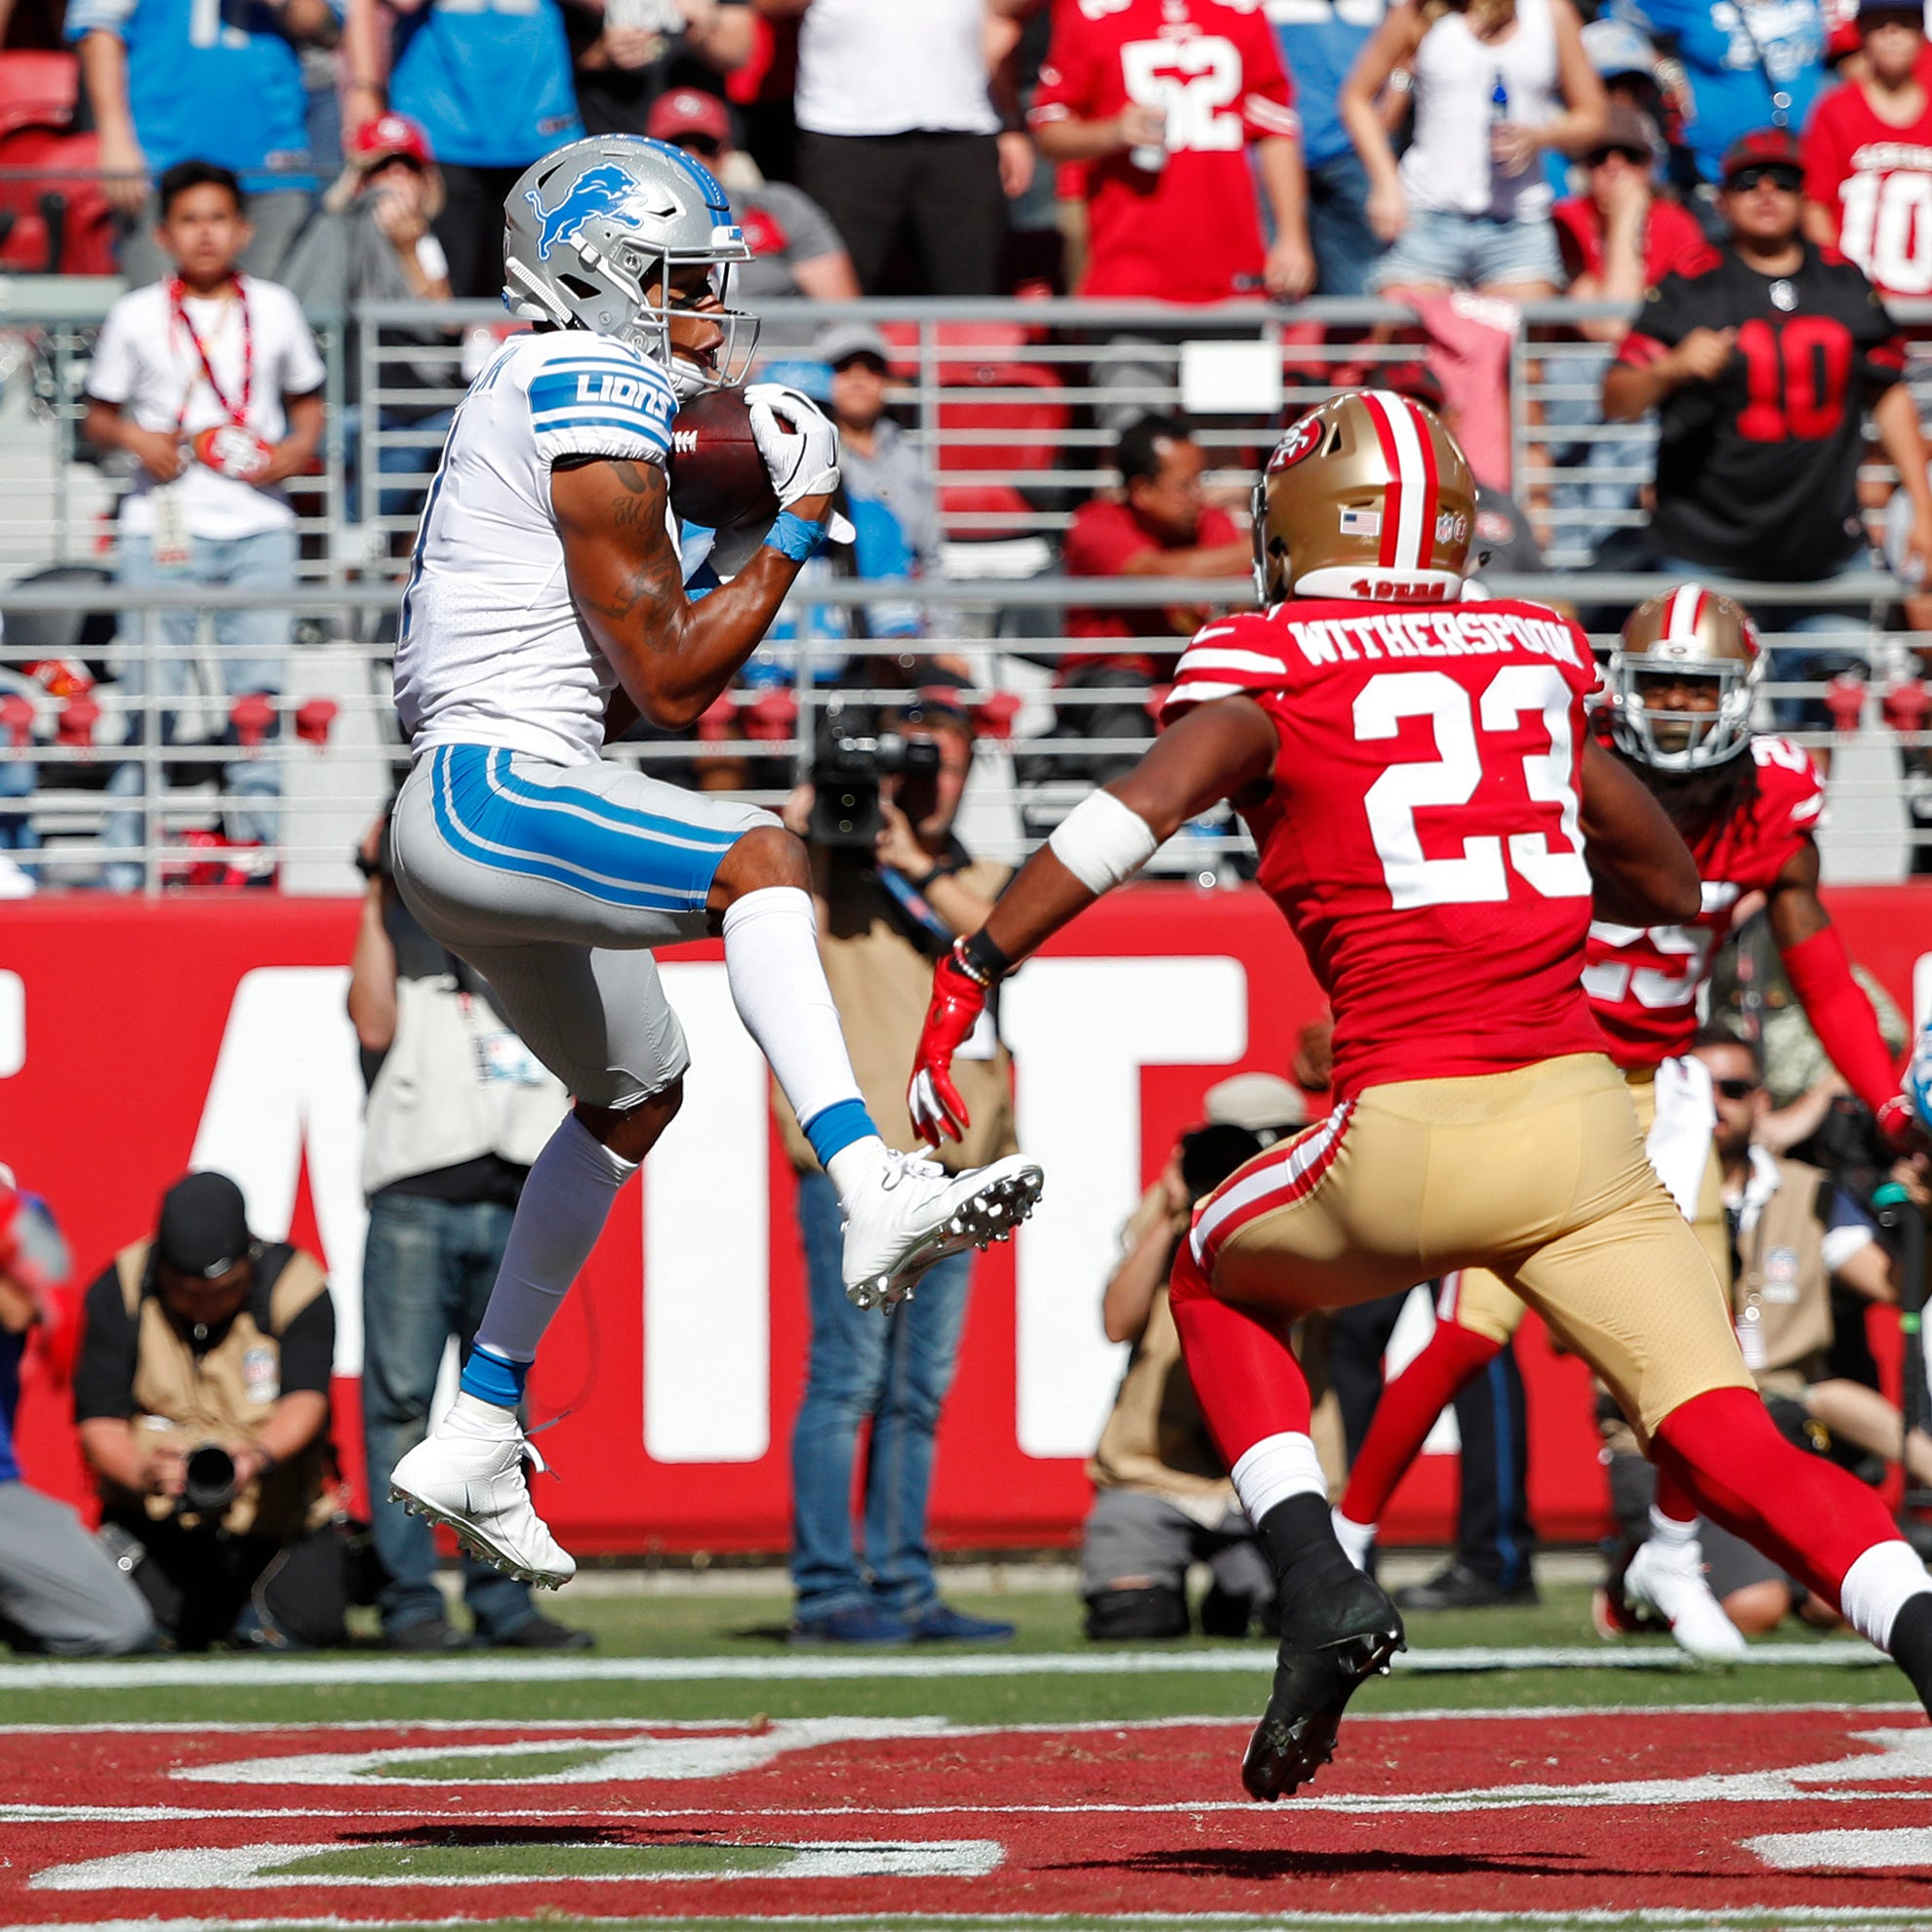 San Francisco 49ers 30, Detroit Lions 27: Photos from the game